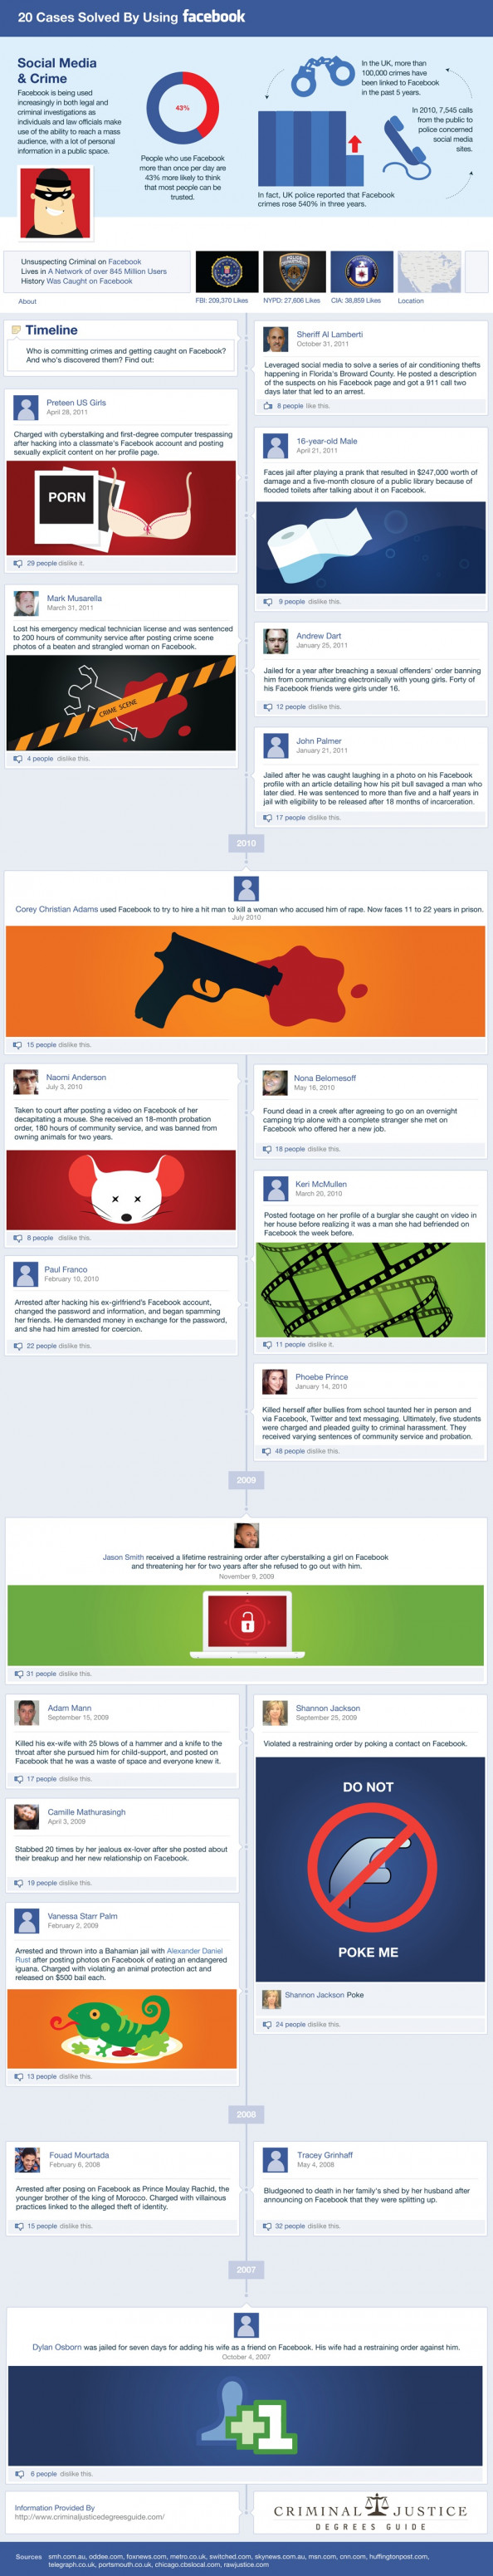 Facebook Crime Solving Infographic